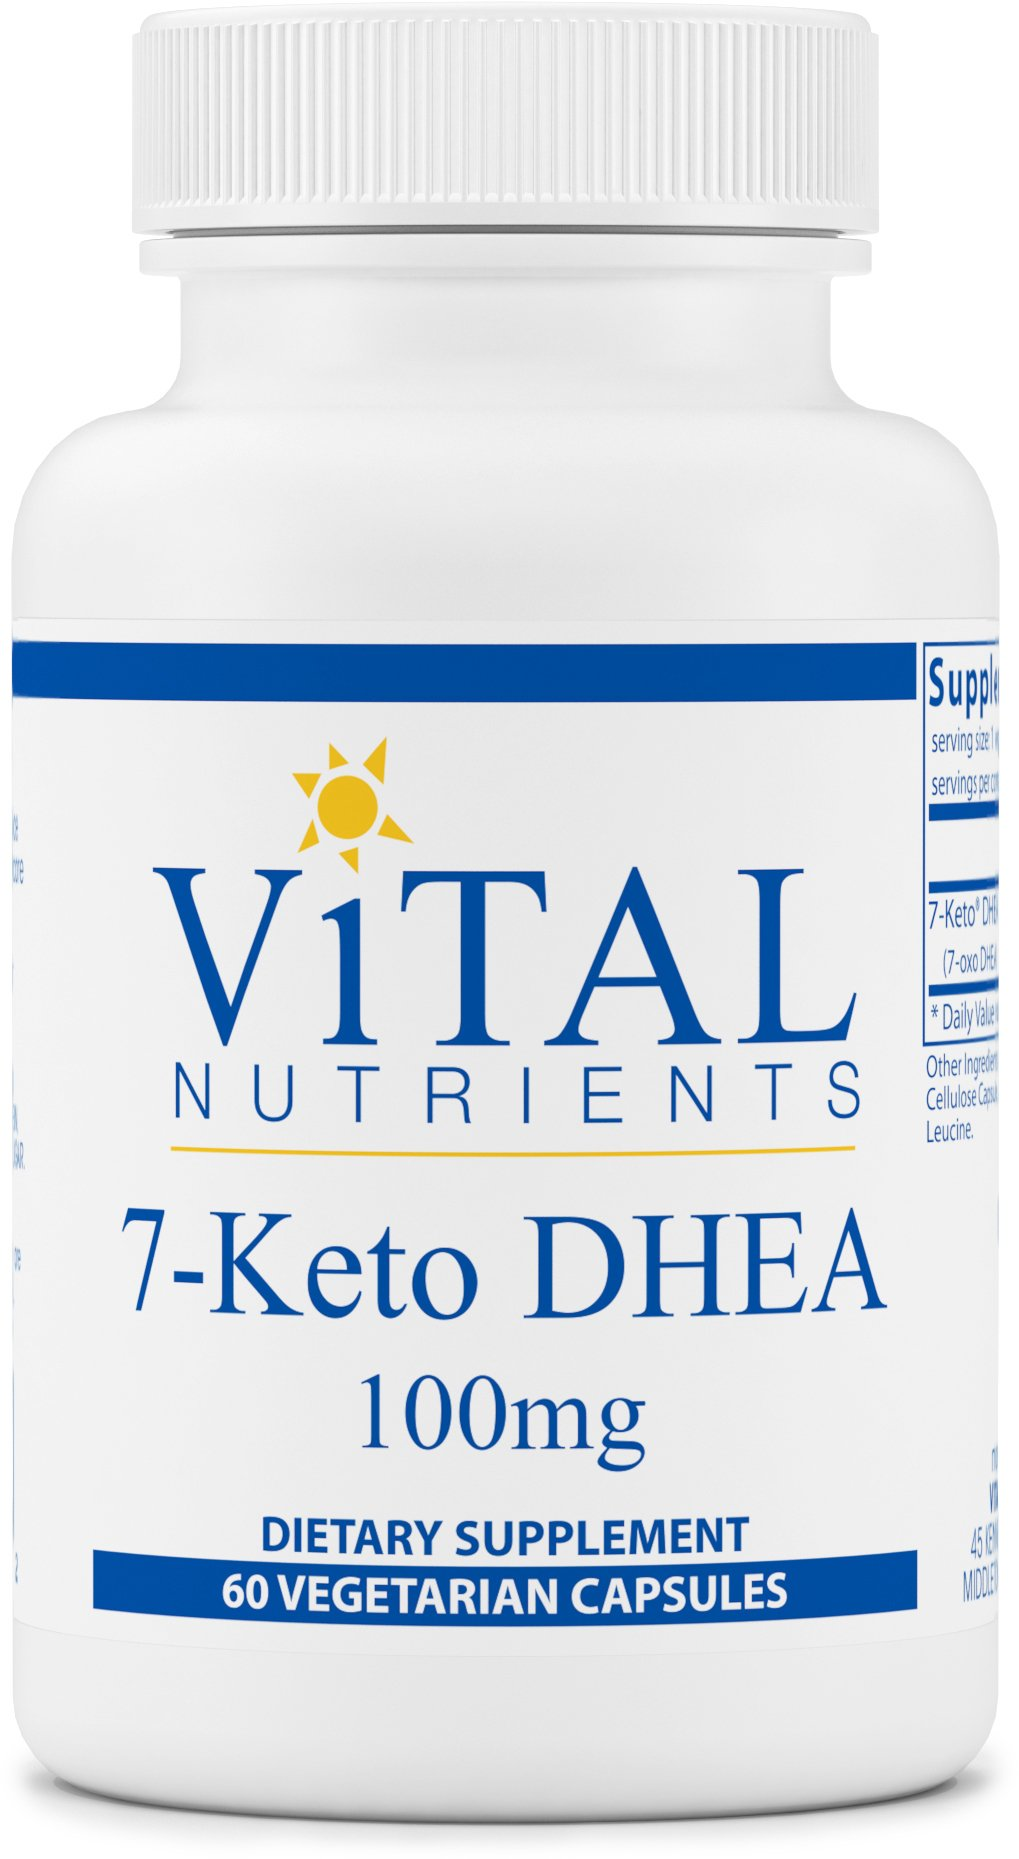 Vital Nutrients - 7-Keto DHEA 100 mg - Natural Metabolite Promoting Healthy RMR - 60 Capsules by Vital Nutrients